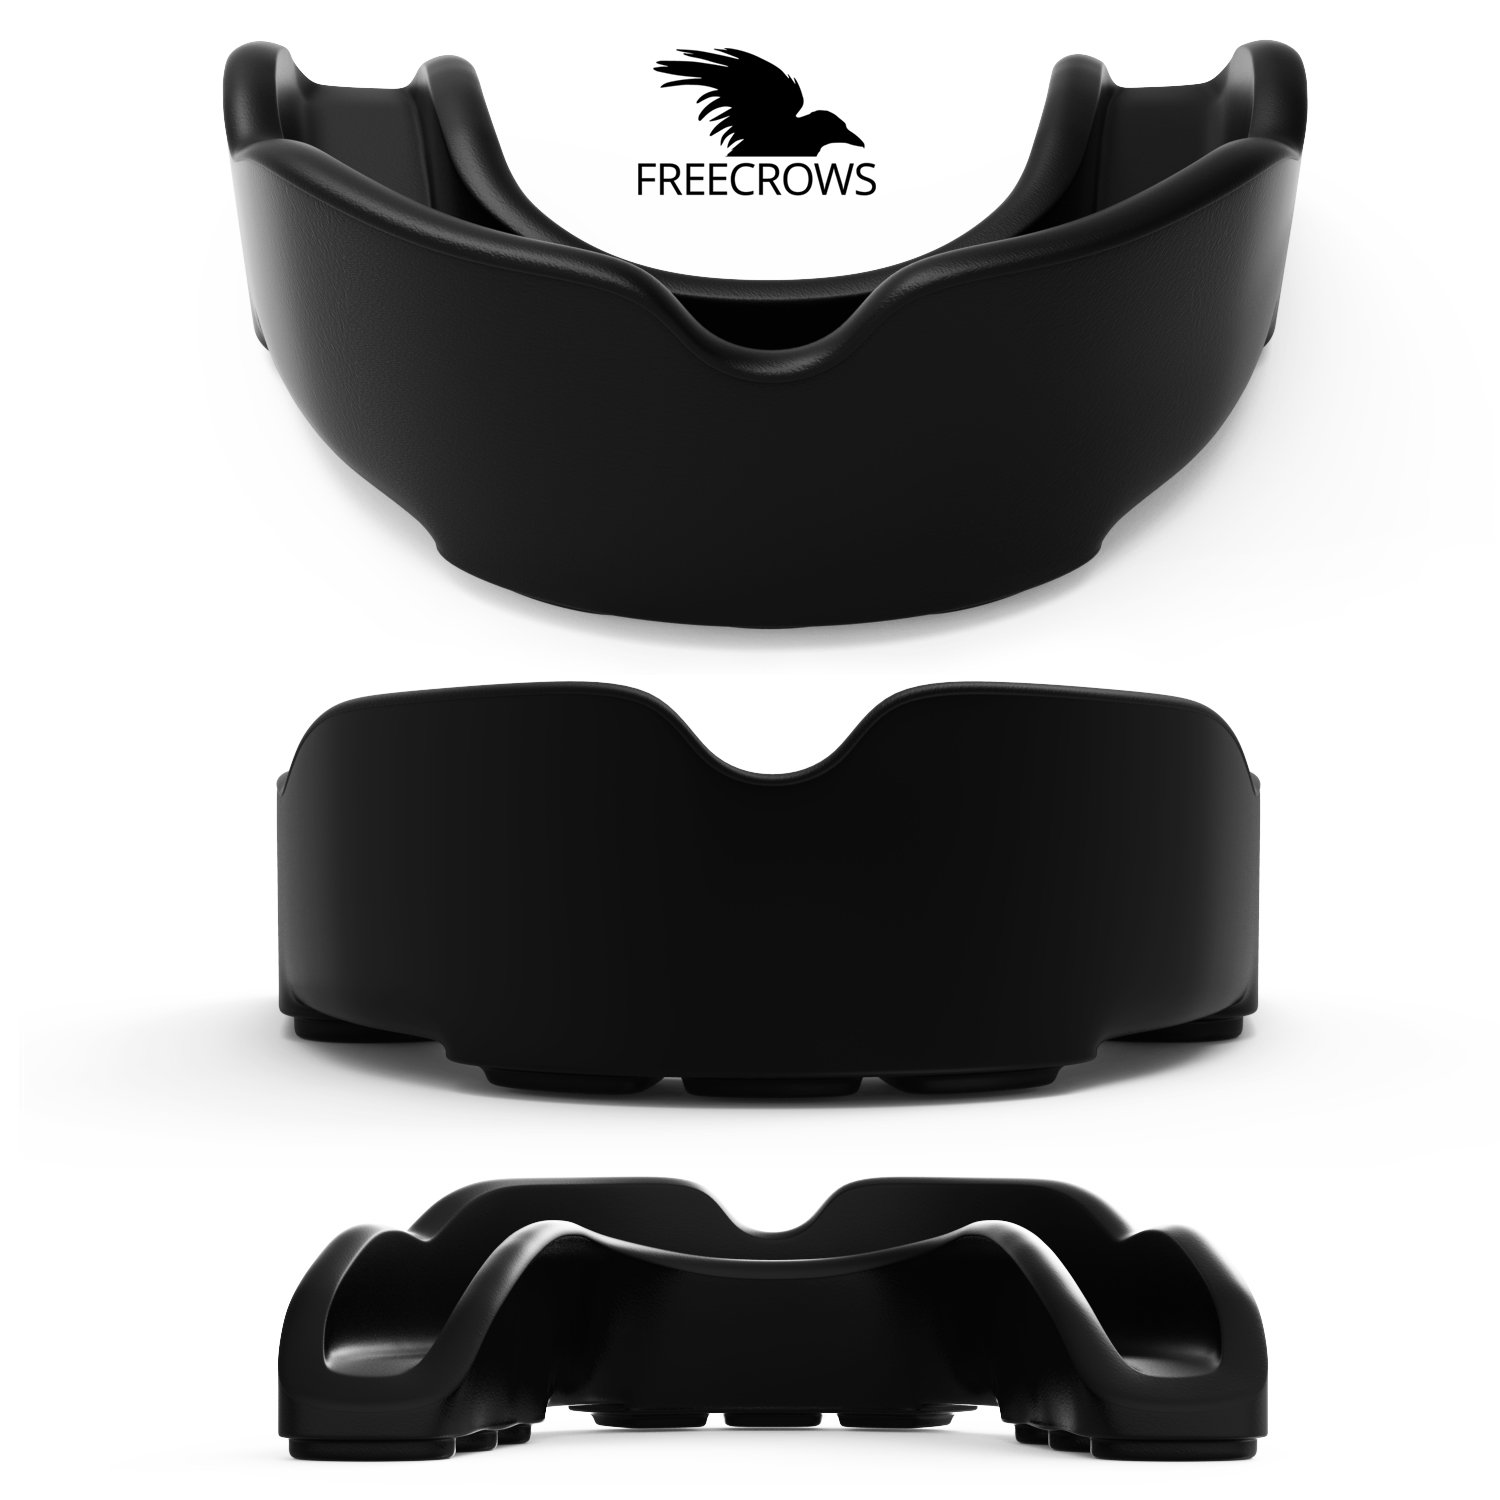 MMA Mouthguard / Adult Mouth Guard - 2x Gum Shield Teeth Protection for all Contact Sports and Game - UFC , Boxing , Taekwondo , Martial Arts , etc.- Two Mouthguards for Women and Men by Freecrows by FREECROWS (Image #5)